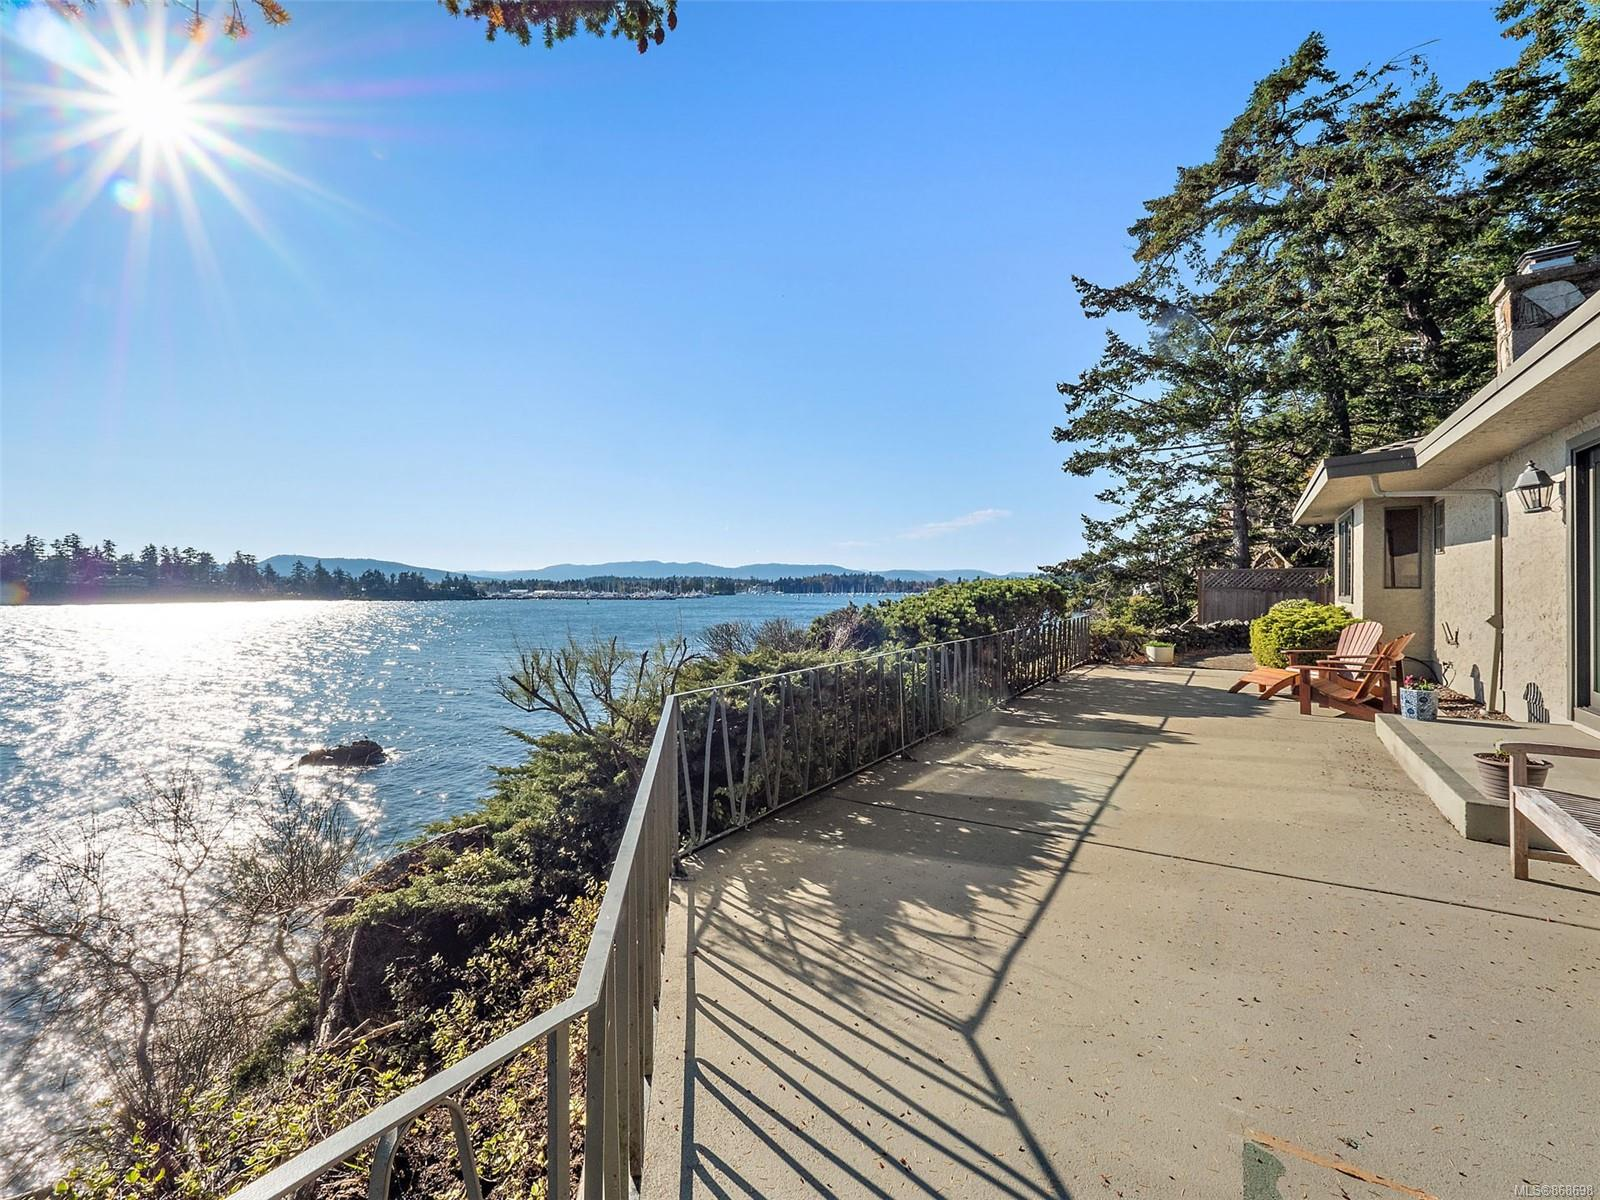 South facing waterfront home on .55 private treed acres. Live amongst the best of west coast life on the water here on exclusive Curteis Point. One level living is possible here in this hybrid mid century mod style home with views and exposure to live for! Your private estate lot begins as you drive through an array of mature Douglas Fir, Cedar and Arbutus trees to the home site which offers an oversized detached garage and the main house. 3 Bed, 3 Bath with an updated kitchen with heated tile floors & new Pella doors to the 675 sqft waterfront patio. A gas fireplace anchors the open living plan in addition to a flexible layout that offers 2 or 3 bedrooms on the main and another on the lower walkout level. A new staircase to a private arbutus cove is a great spot to launch your kayak/paddle boards to explore the surrounding smaller Islands.  Year round moorage is available at the many choices of walkable marinas nearby. Don't wait too long, private South facing waterfront is rare!